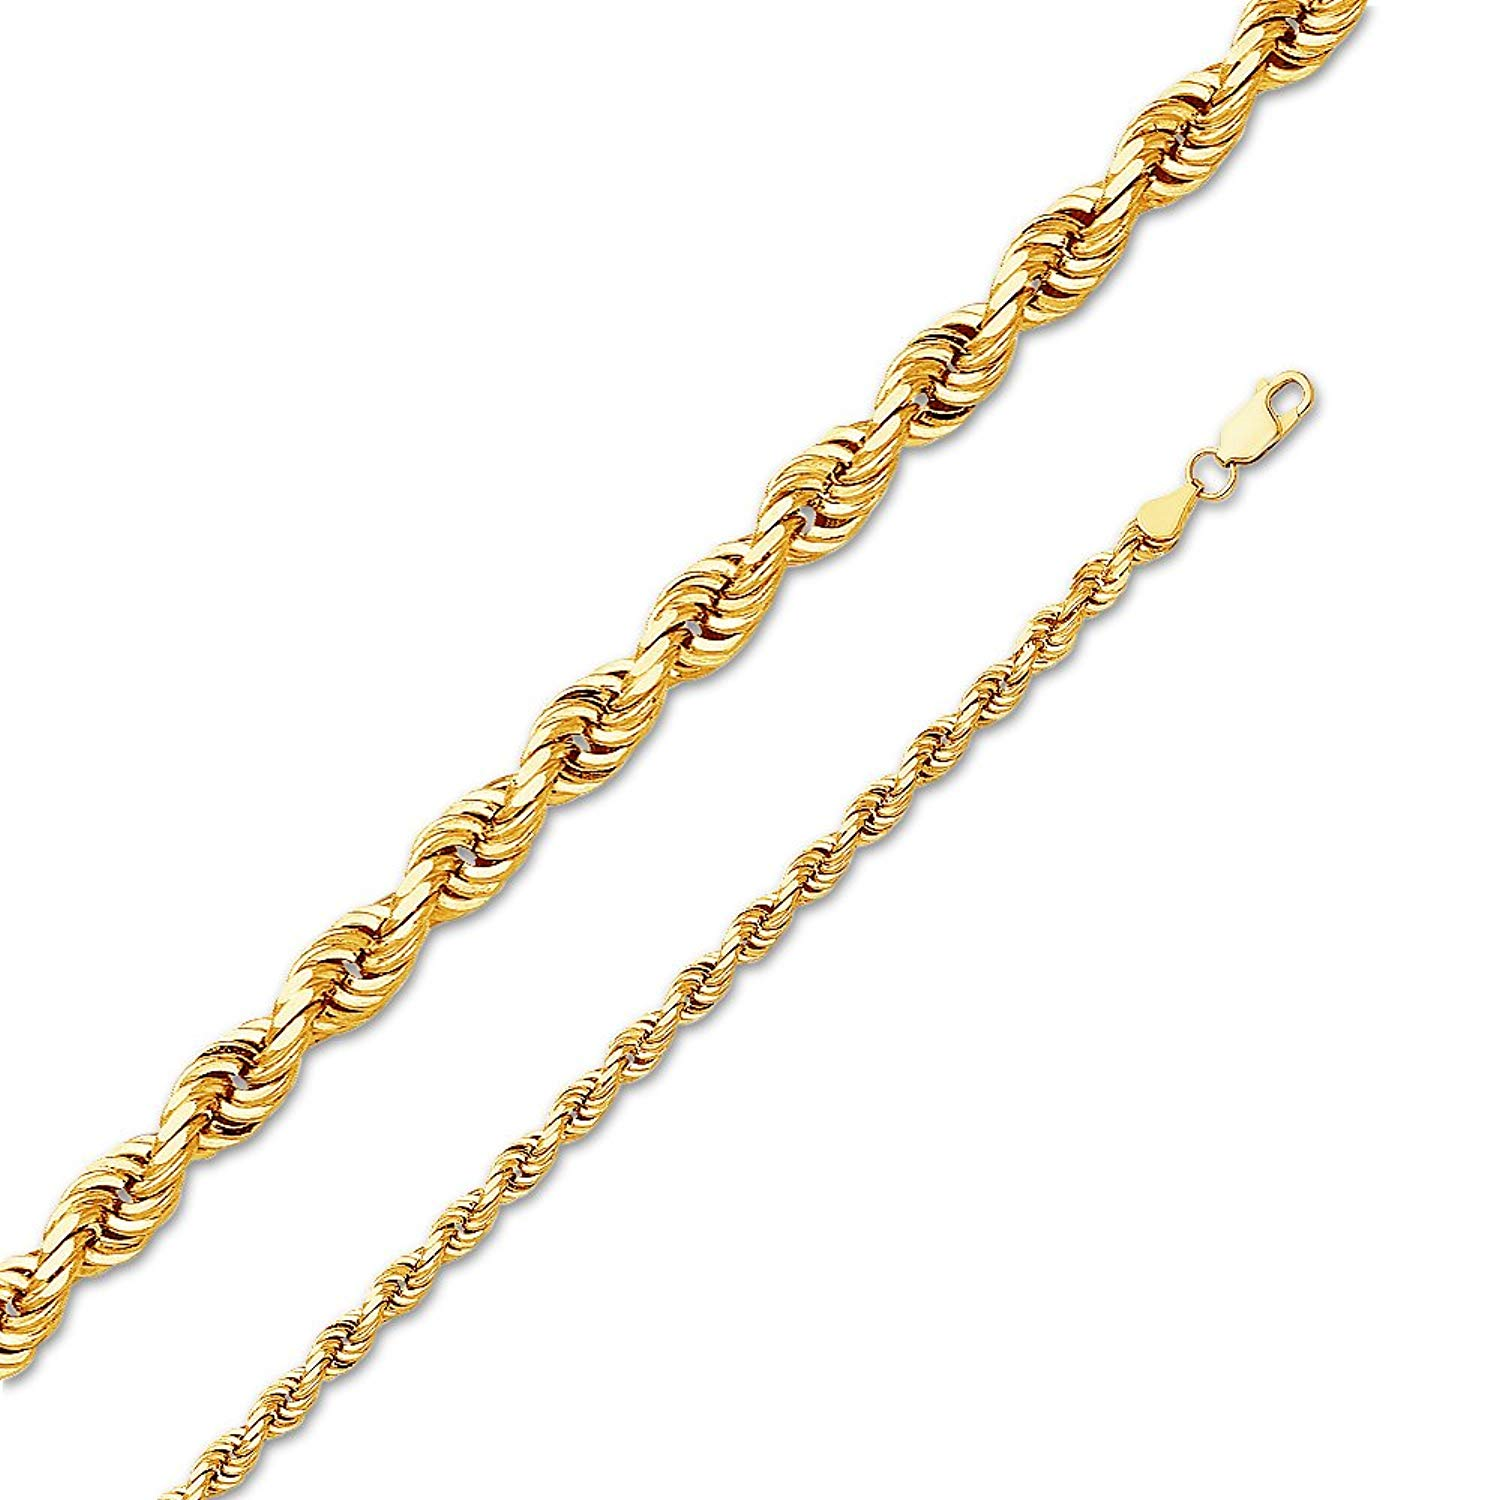 Jewel Tie Solid 14K Yellow Gold Solid 5mm Solid Rope Diamond-Cut Necklace Chain